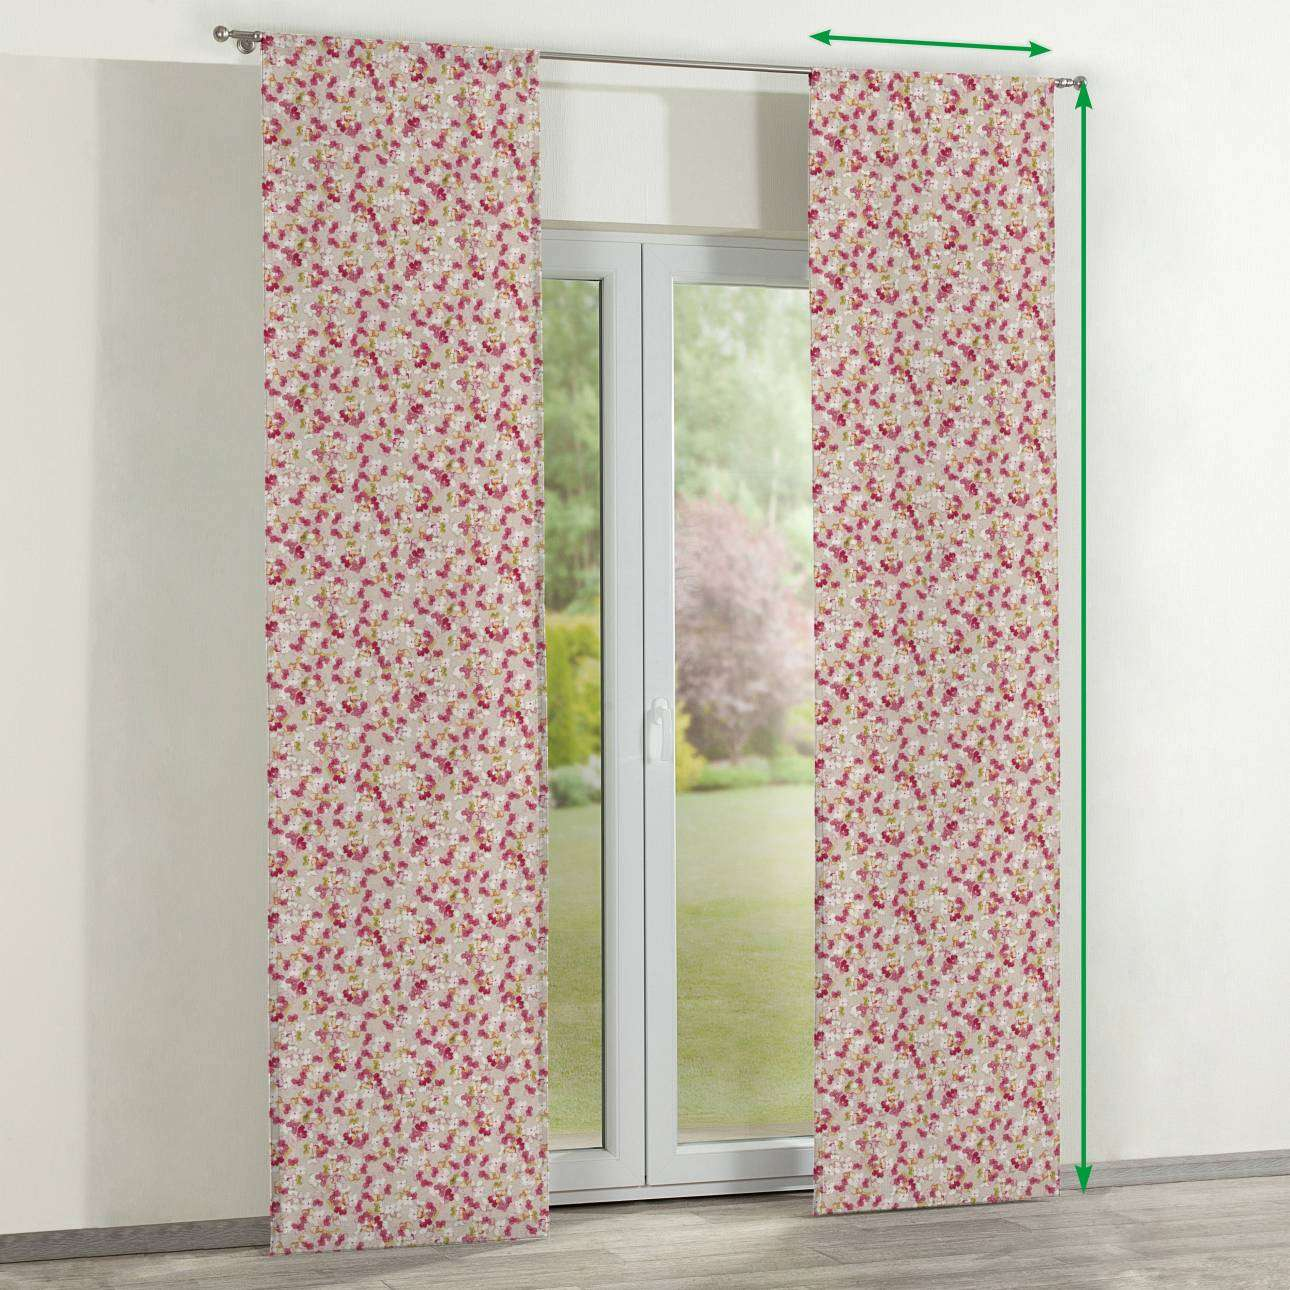 Slot panel curtains – Set of 2 in collection Londres, fabric: 140-47